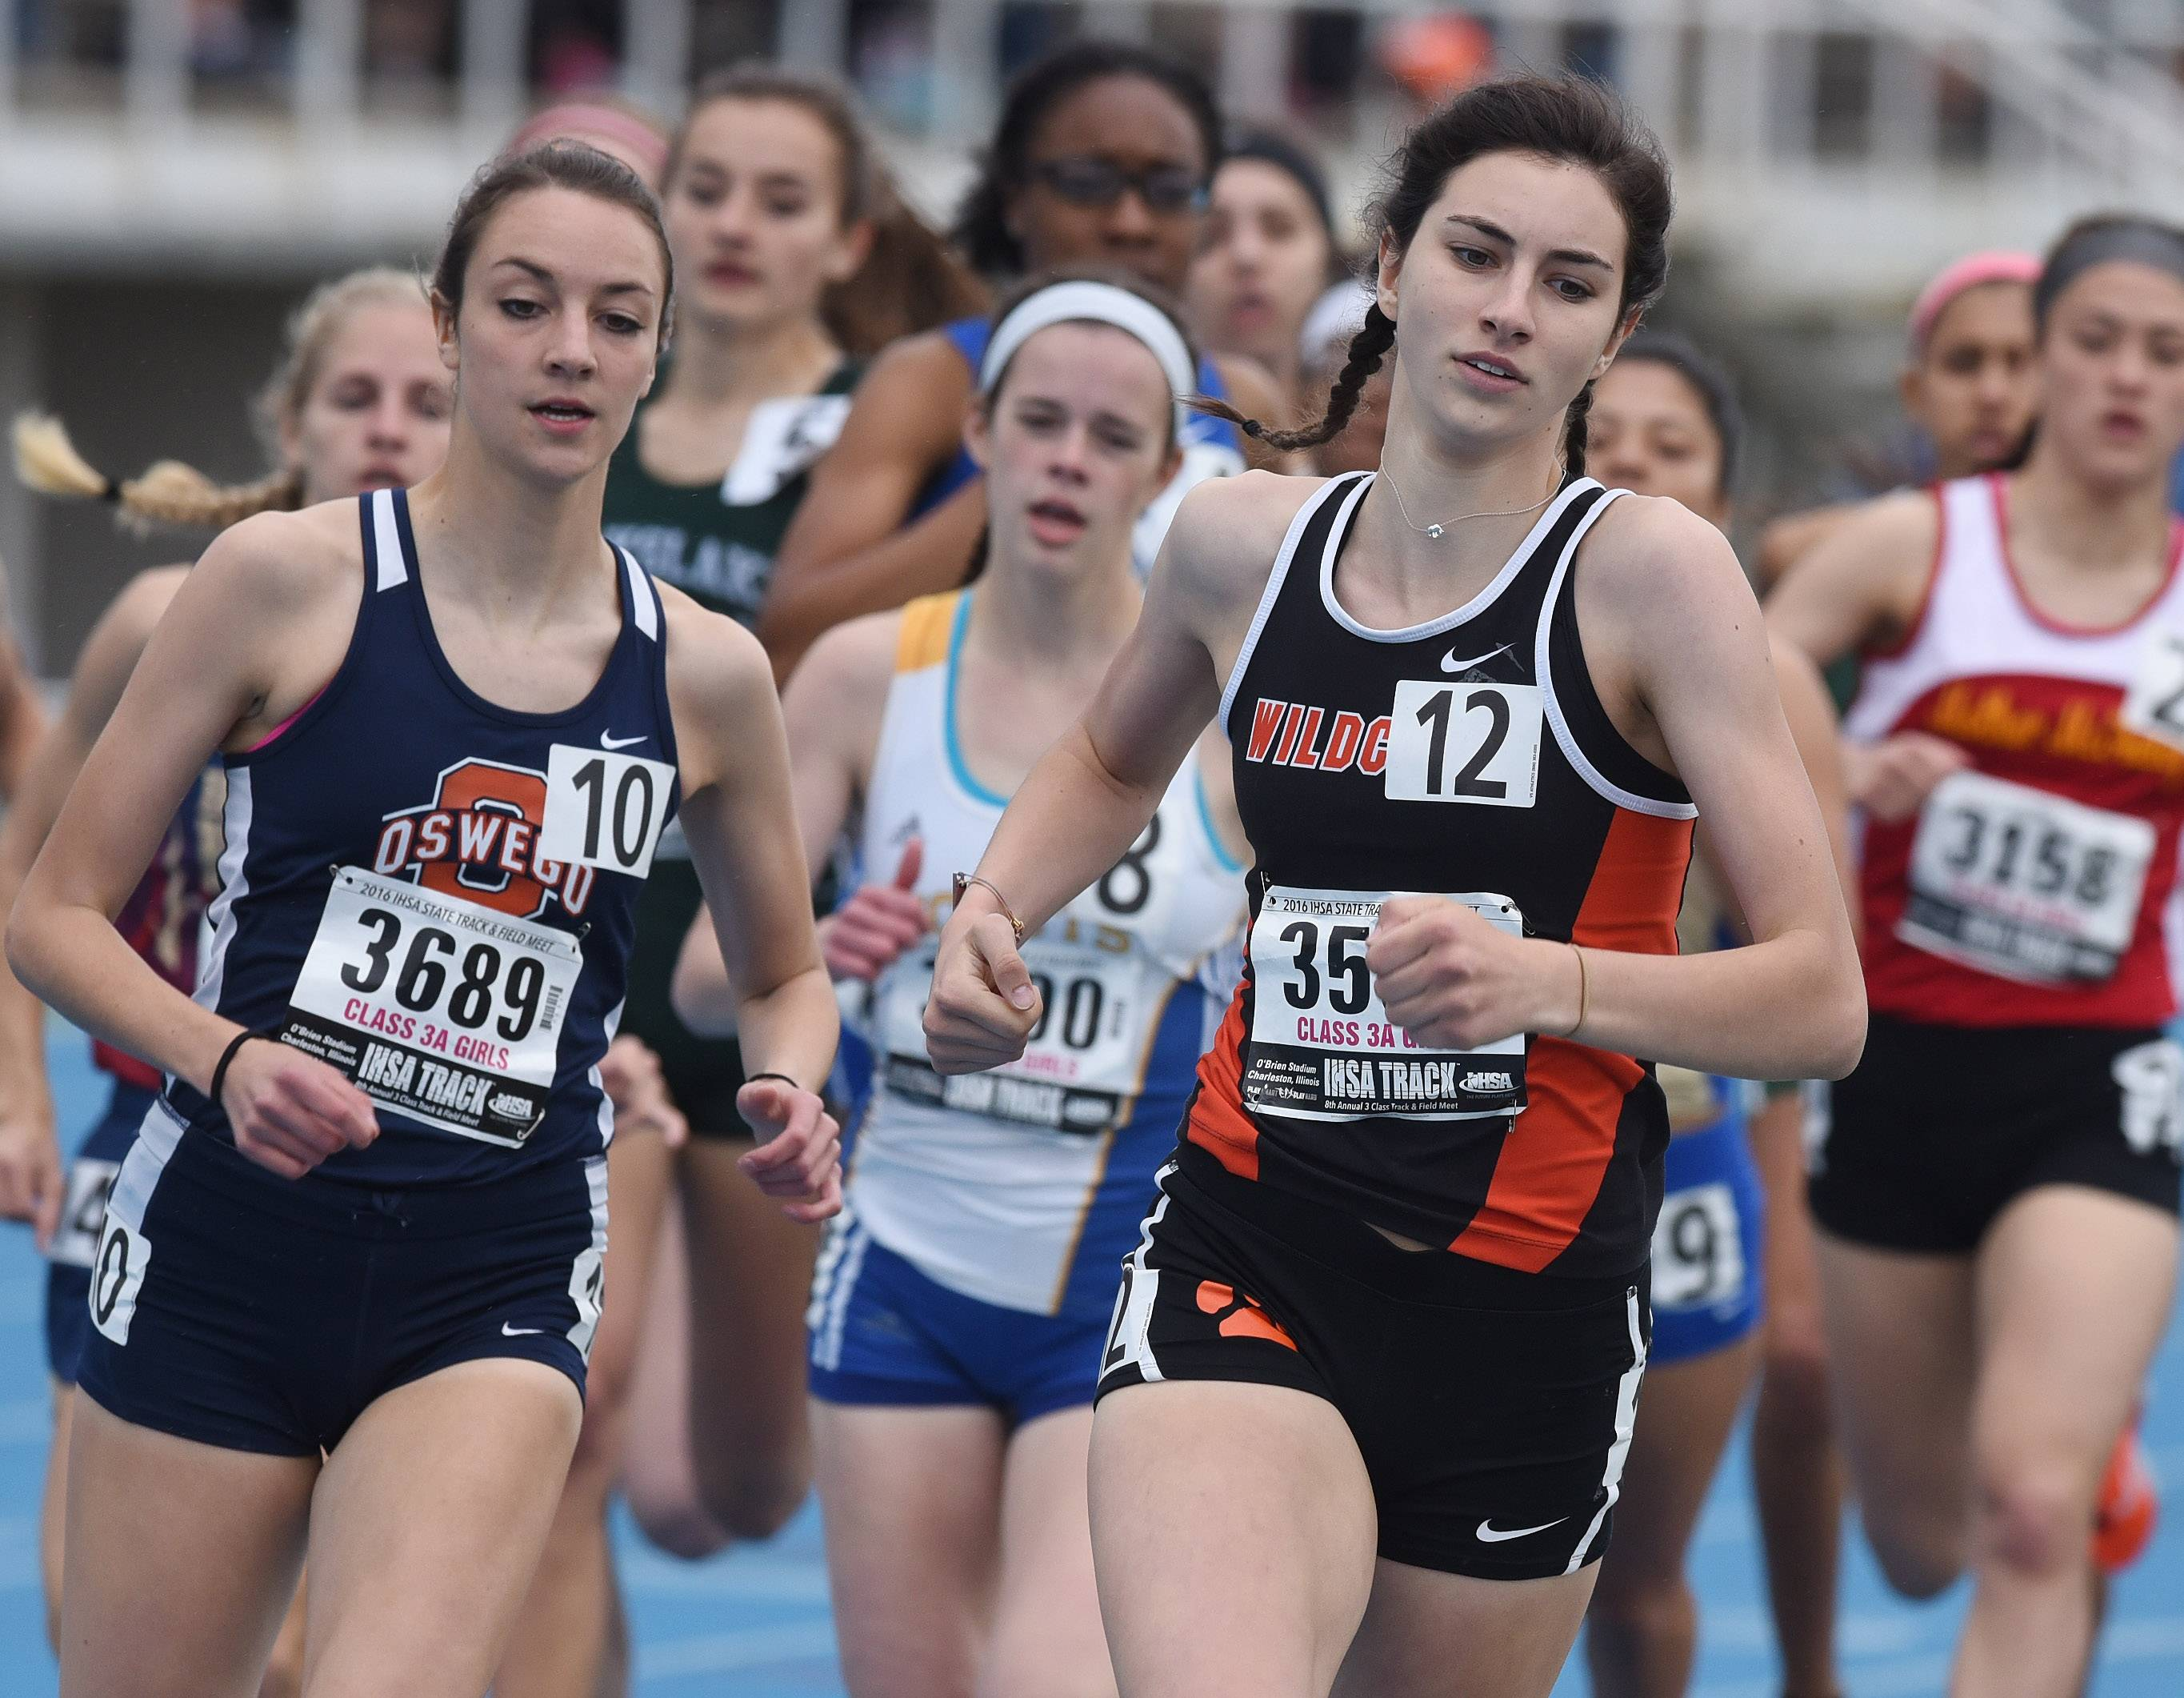 Girls track and field: Libertyville's Johnson surges into 800 final